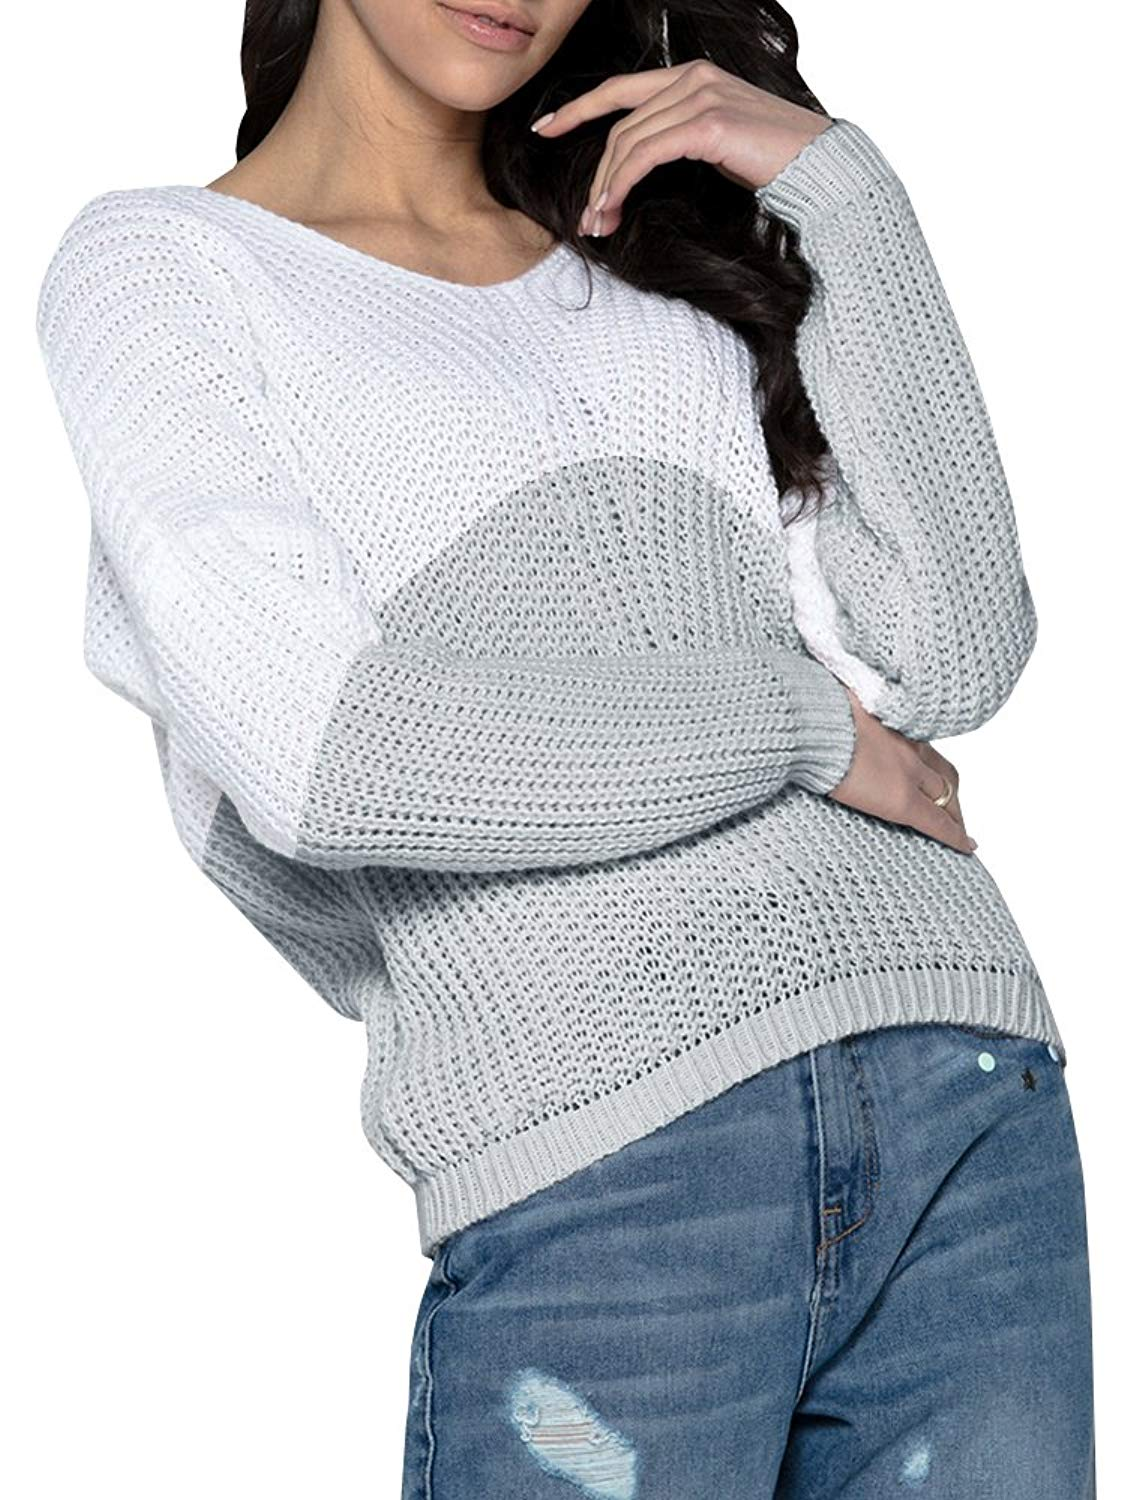 Womens Oversized Sweater Fall Knit Baggy Batwing Pullover Color Block Jumper Tops